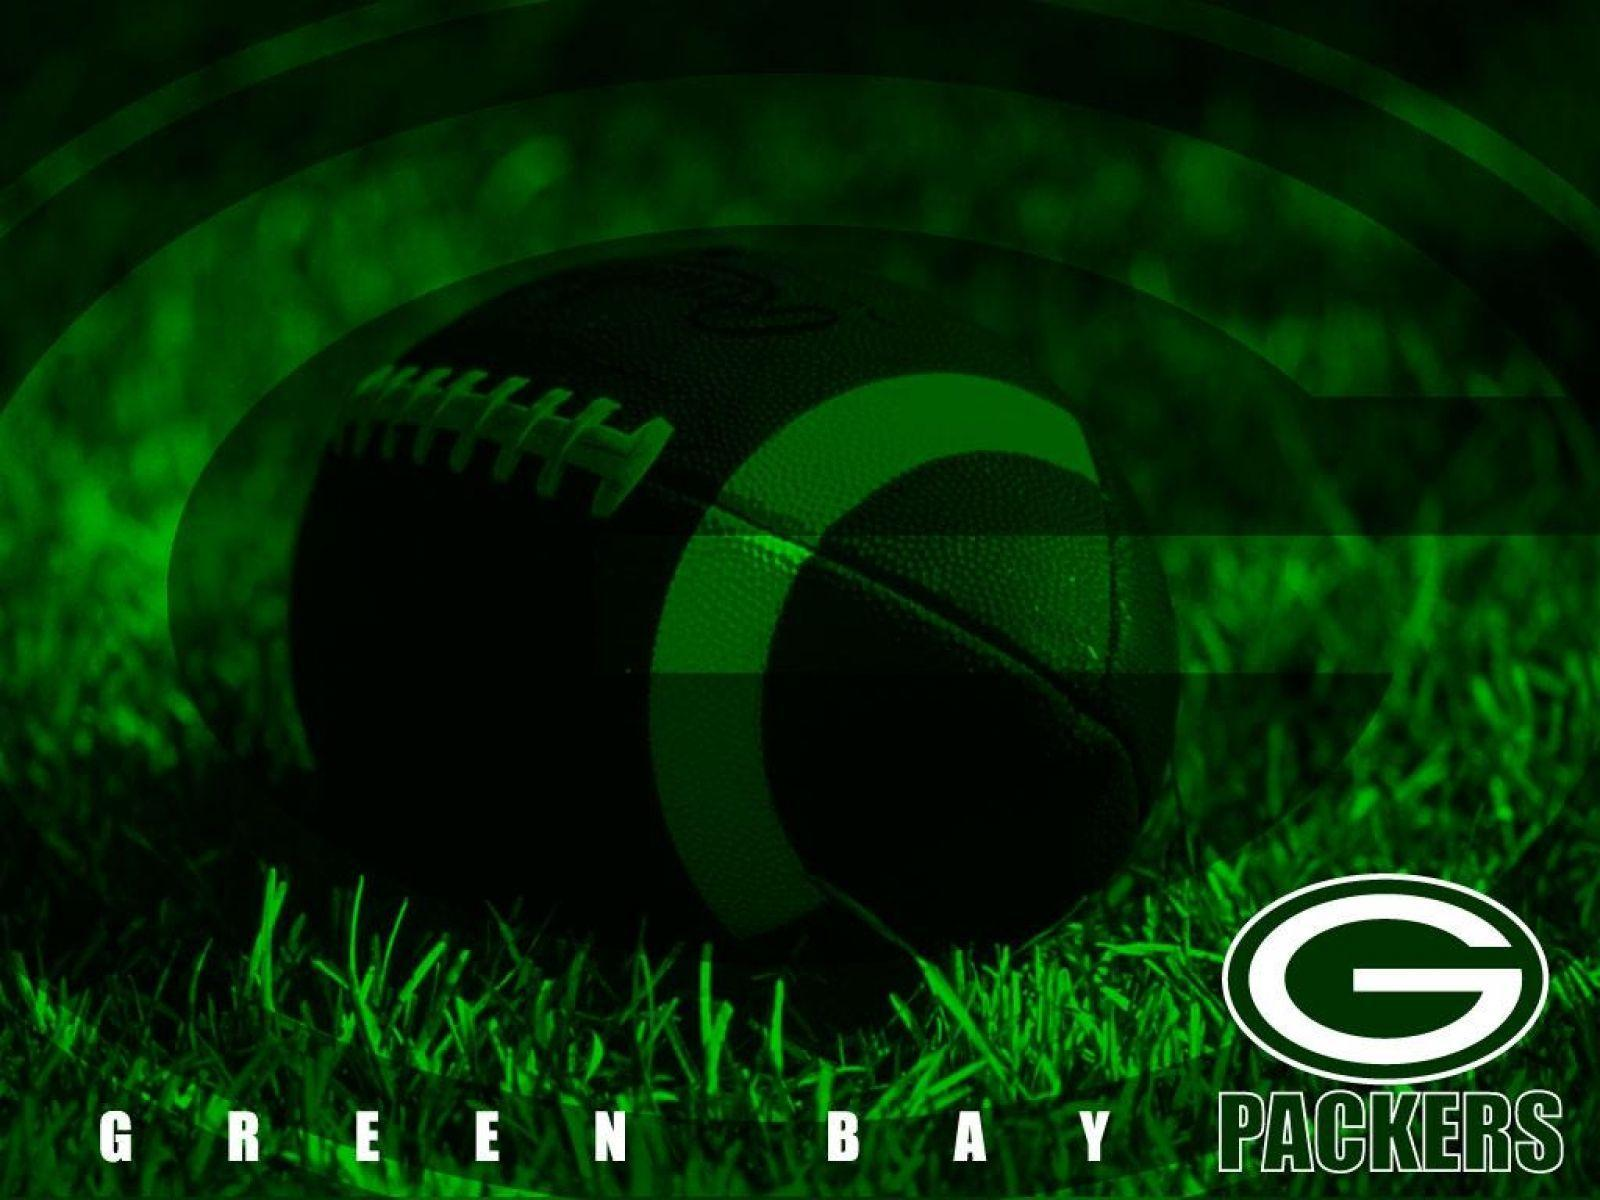 Green Bay Packers Wallpapers at Wallpaperist